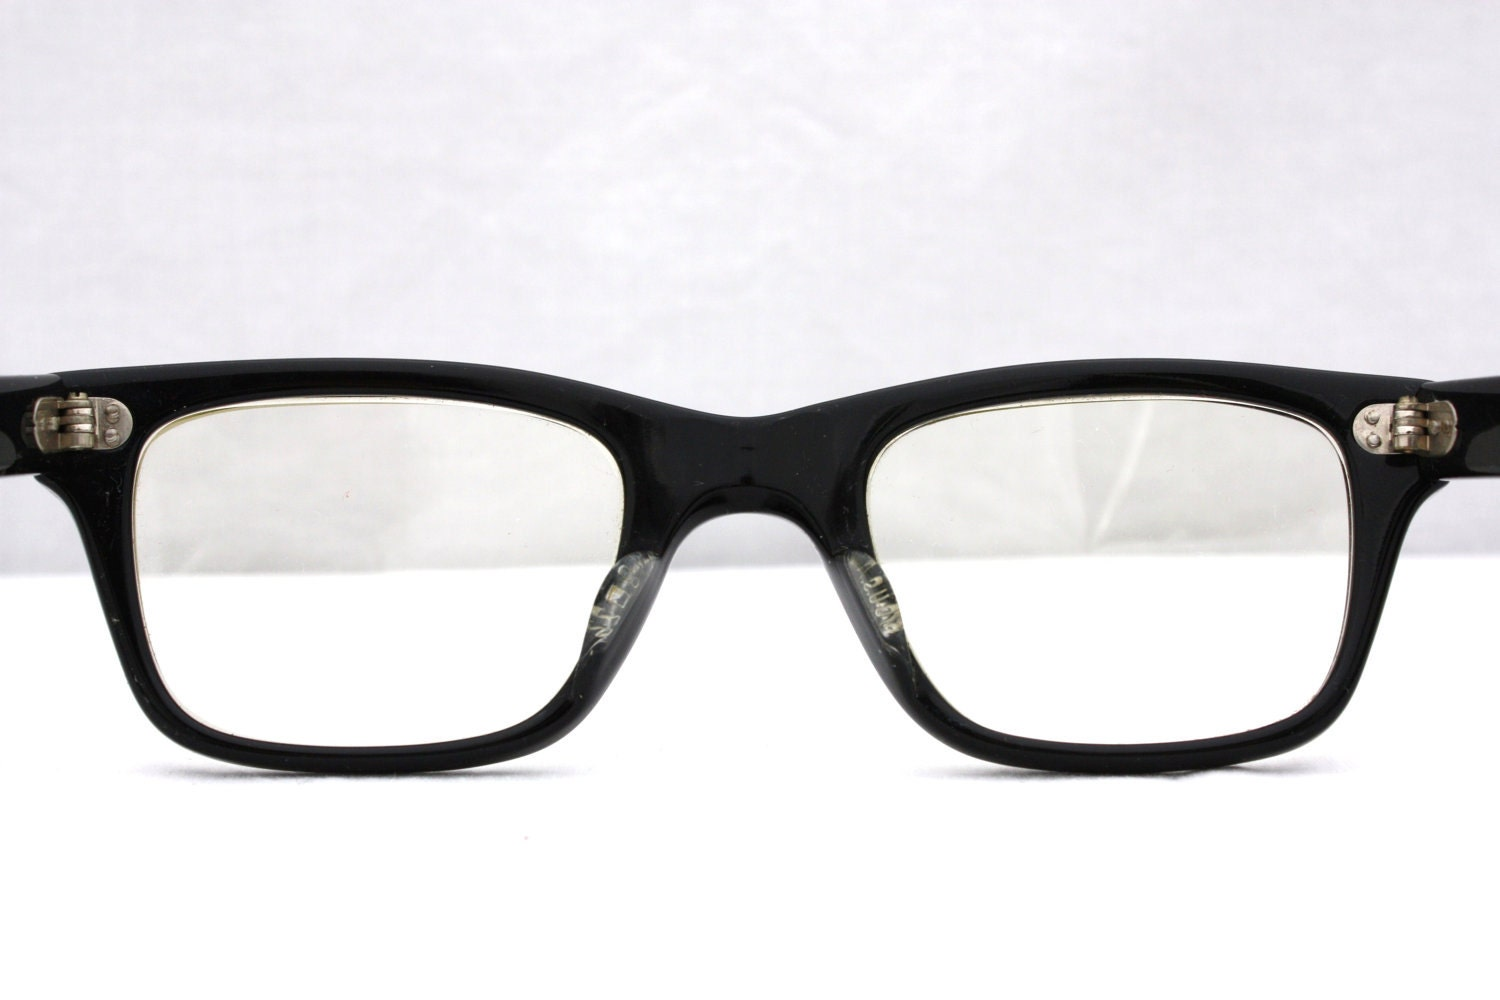 Retro Eyeglass Frames Portland Oregon : Vintage 1960s Black Horn Rimmed Glasses Mad Men Style by ...